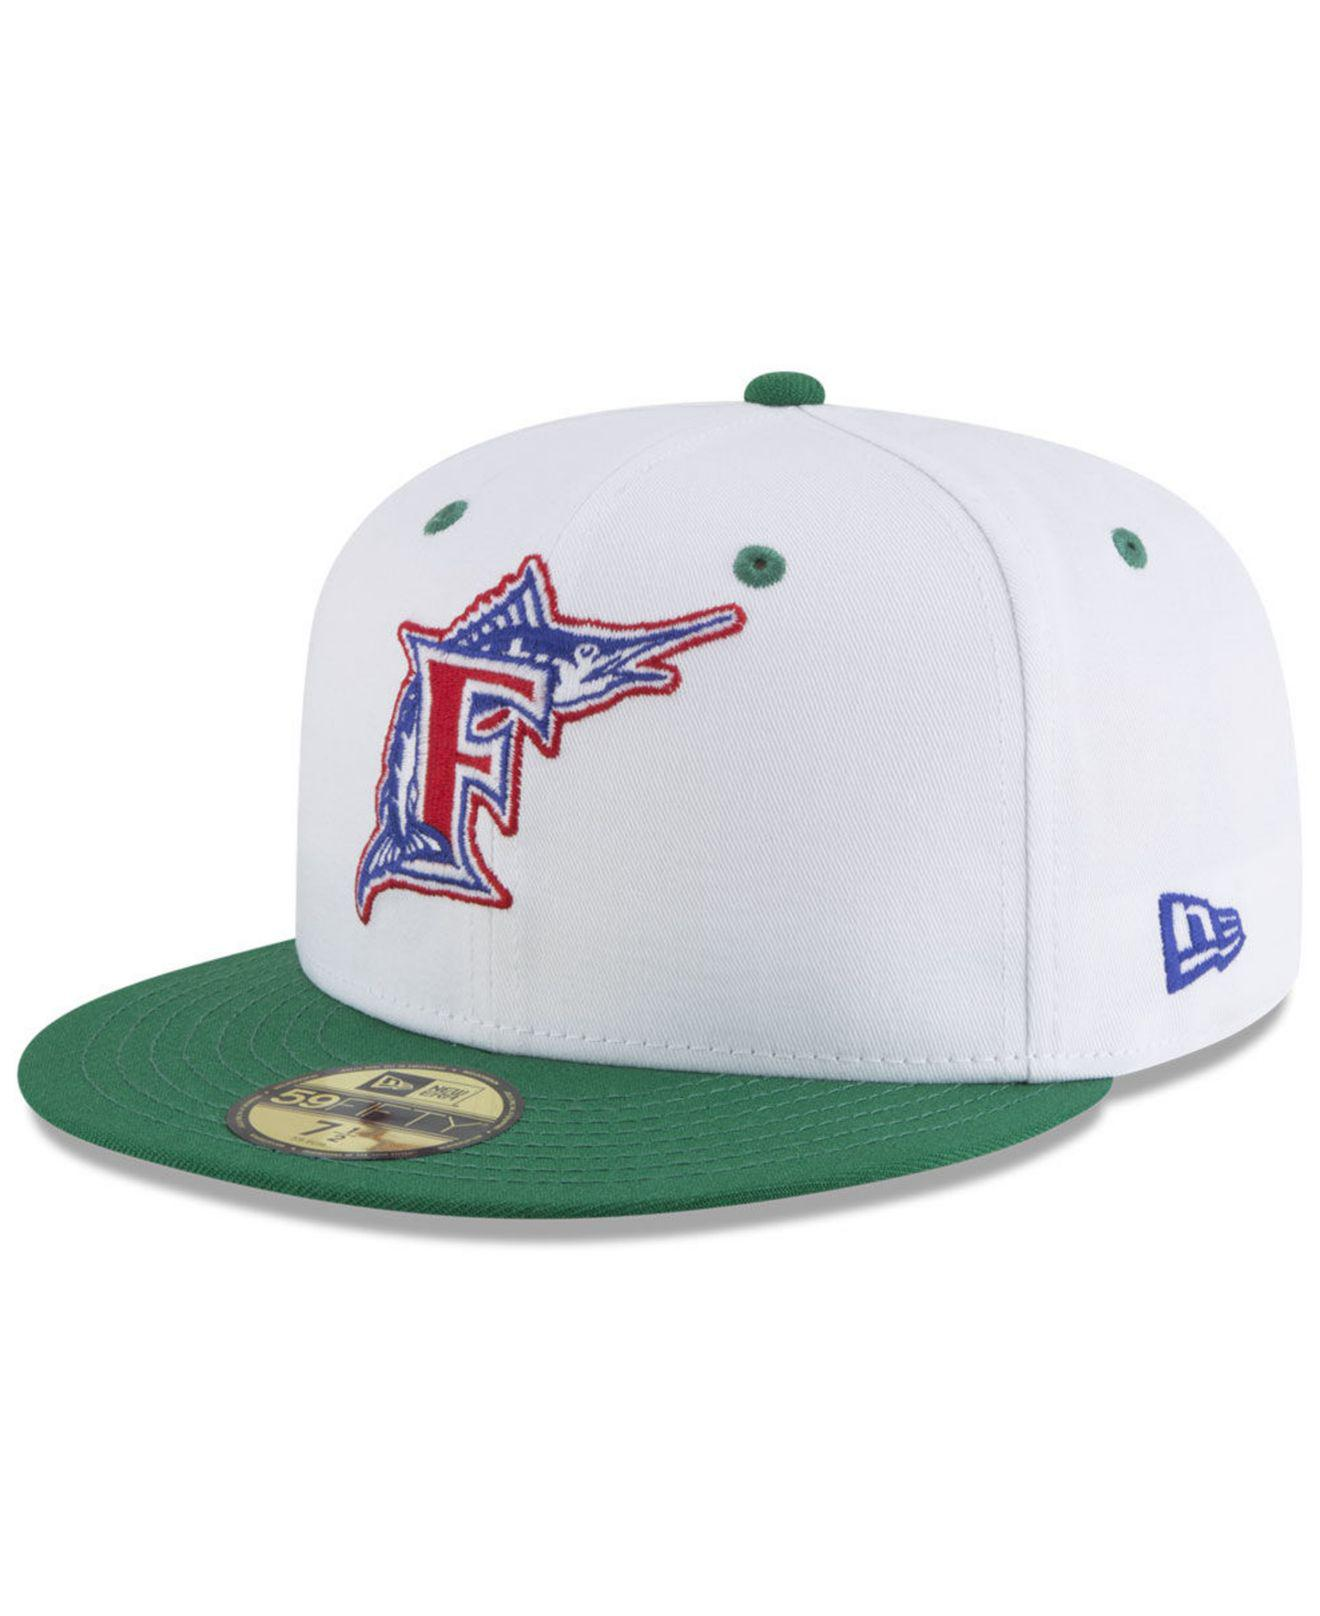 save off 8d69a b448d ... Florida Marlins Retro Diamond 59fifty Fitted Cap for Men - Lyst. View  fullscreen